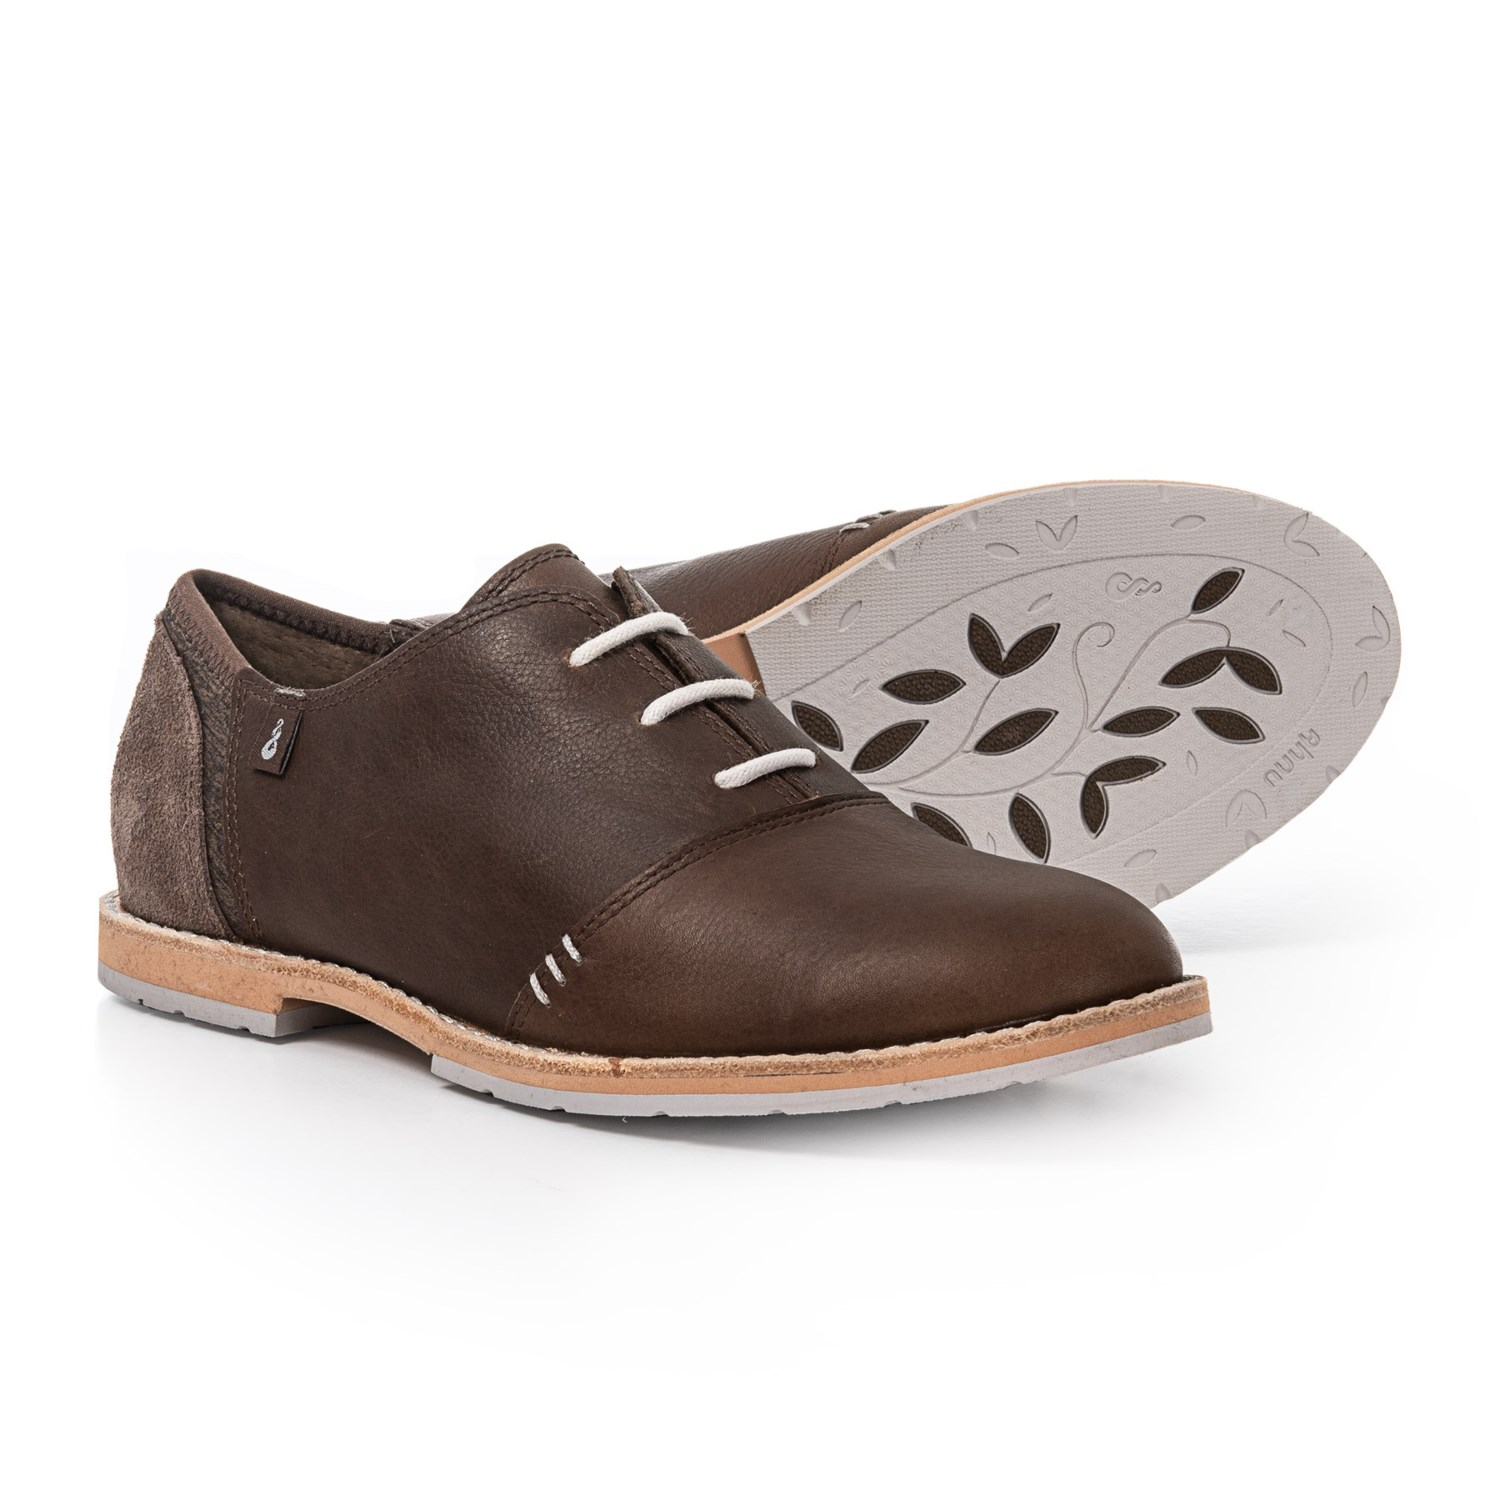 84f11499d5 Ahnu Emery Leather Oxford Shoes (For Women) - Save 42%